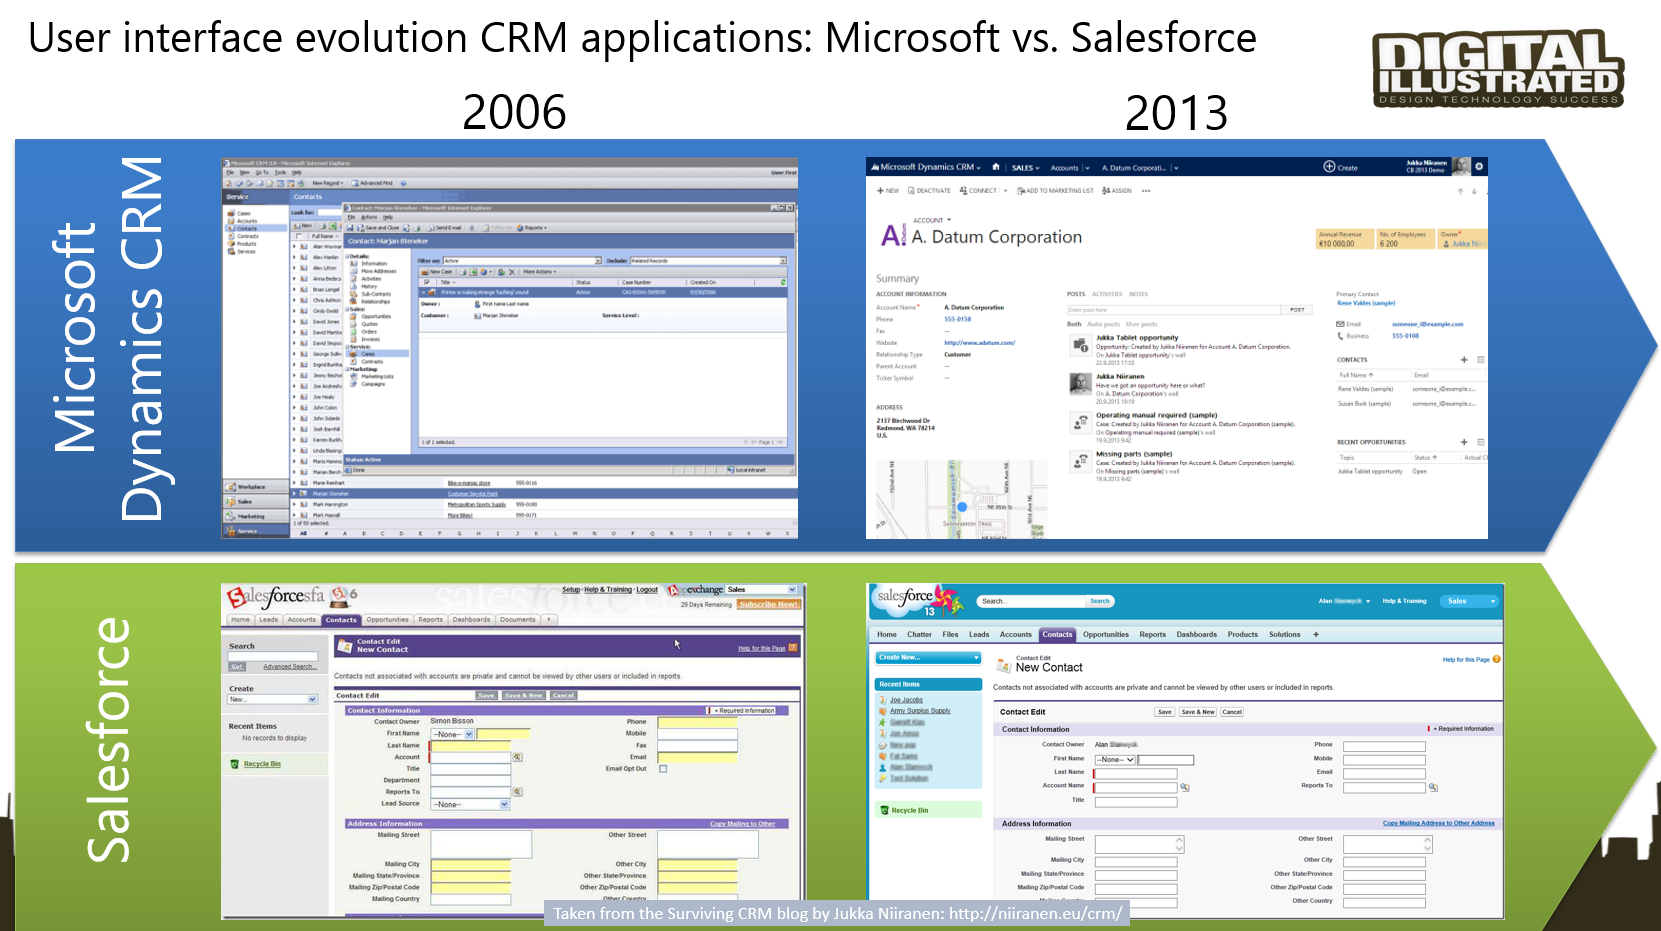 Dynamics CRM Platform Evolution, Part 1: The History